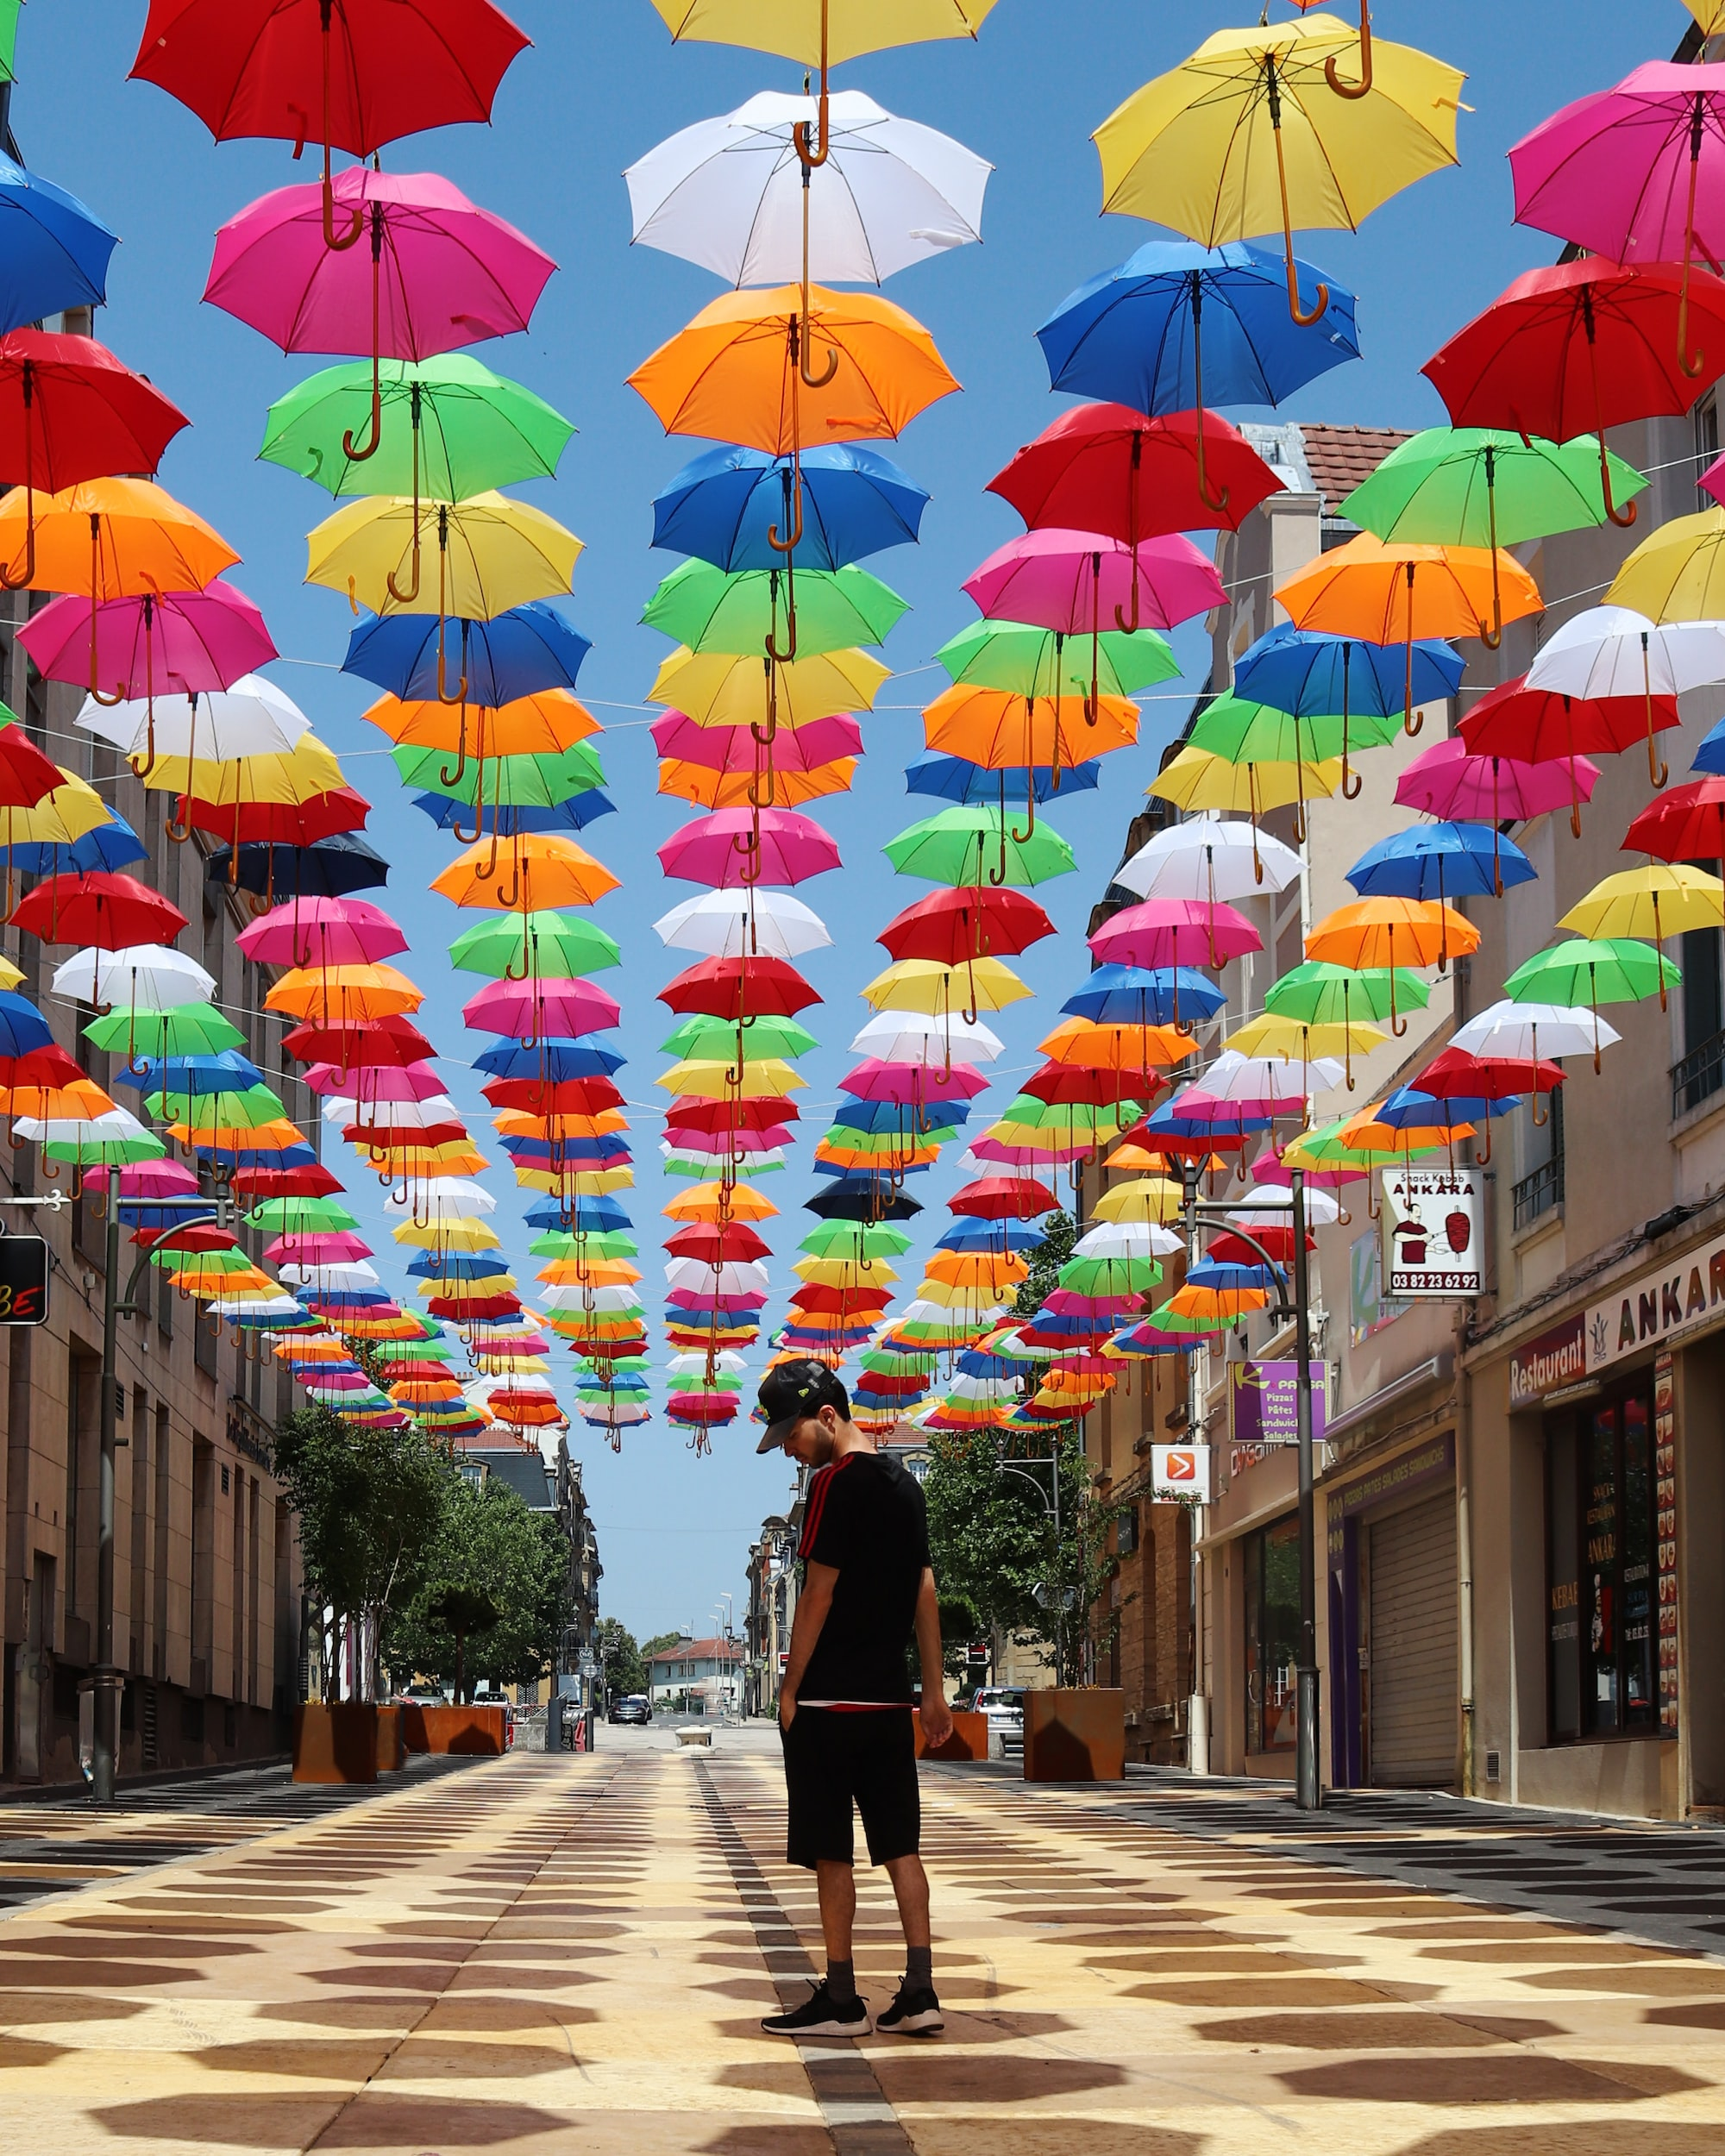 Umbrella street in Longwy, France.